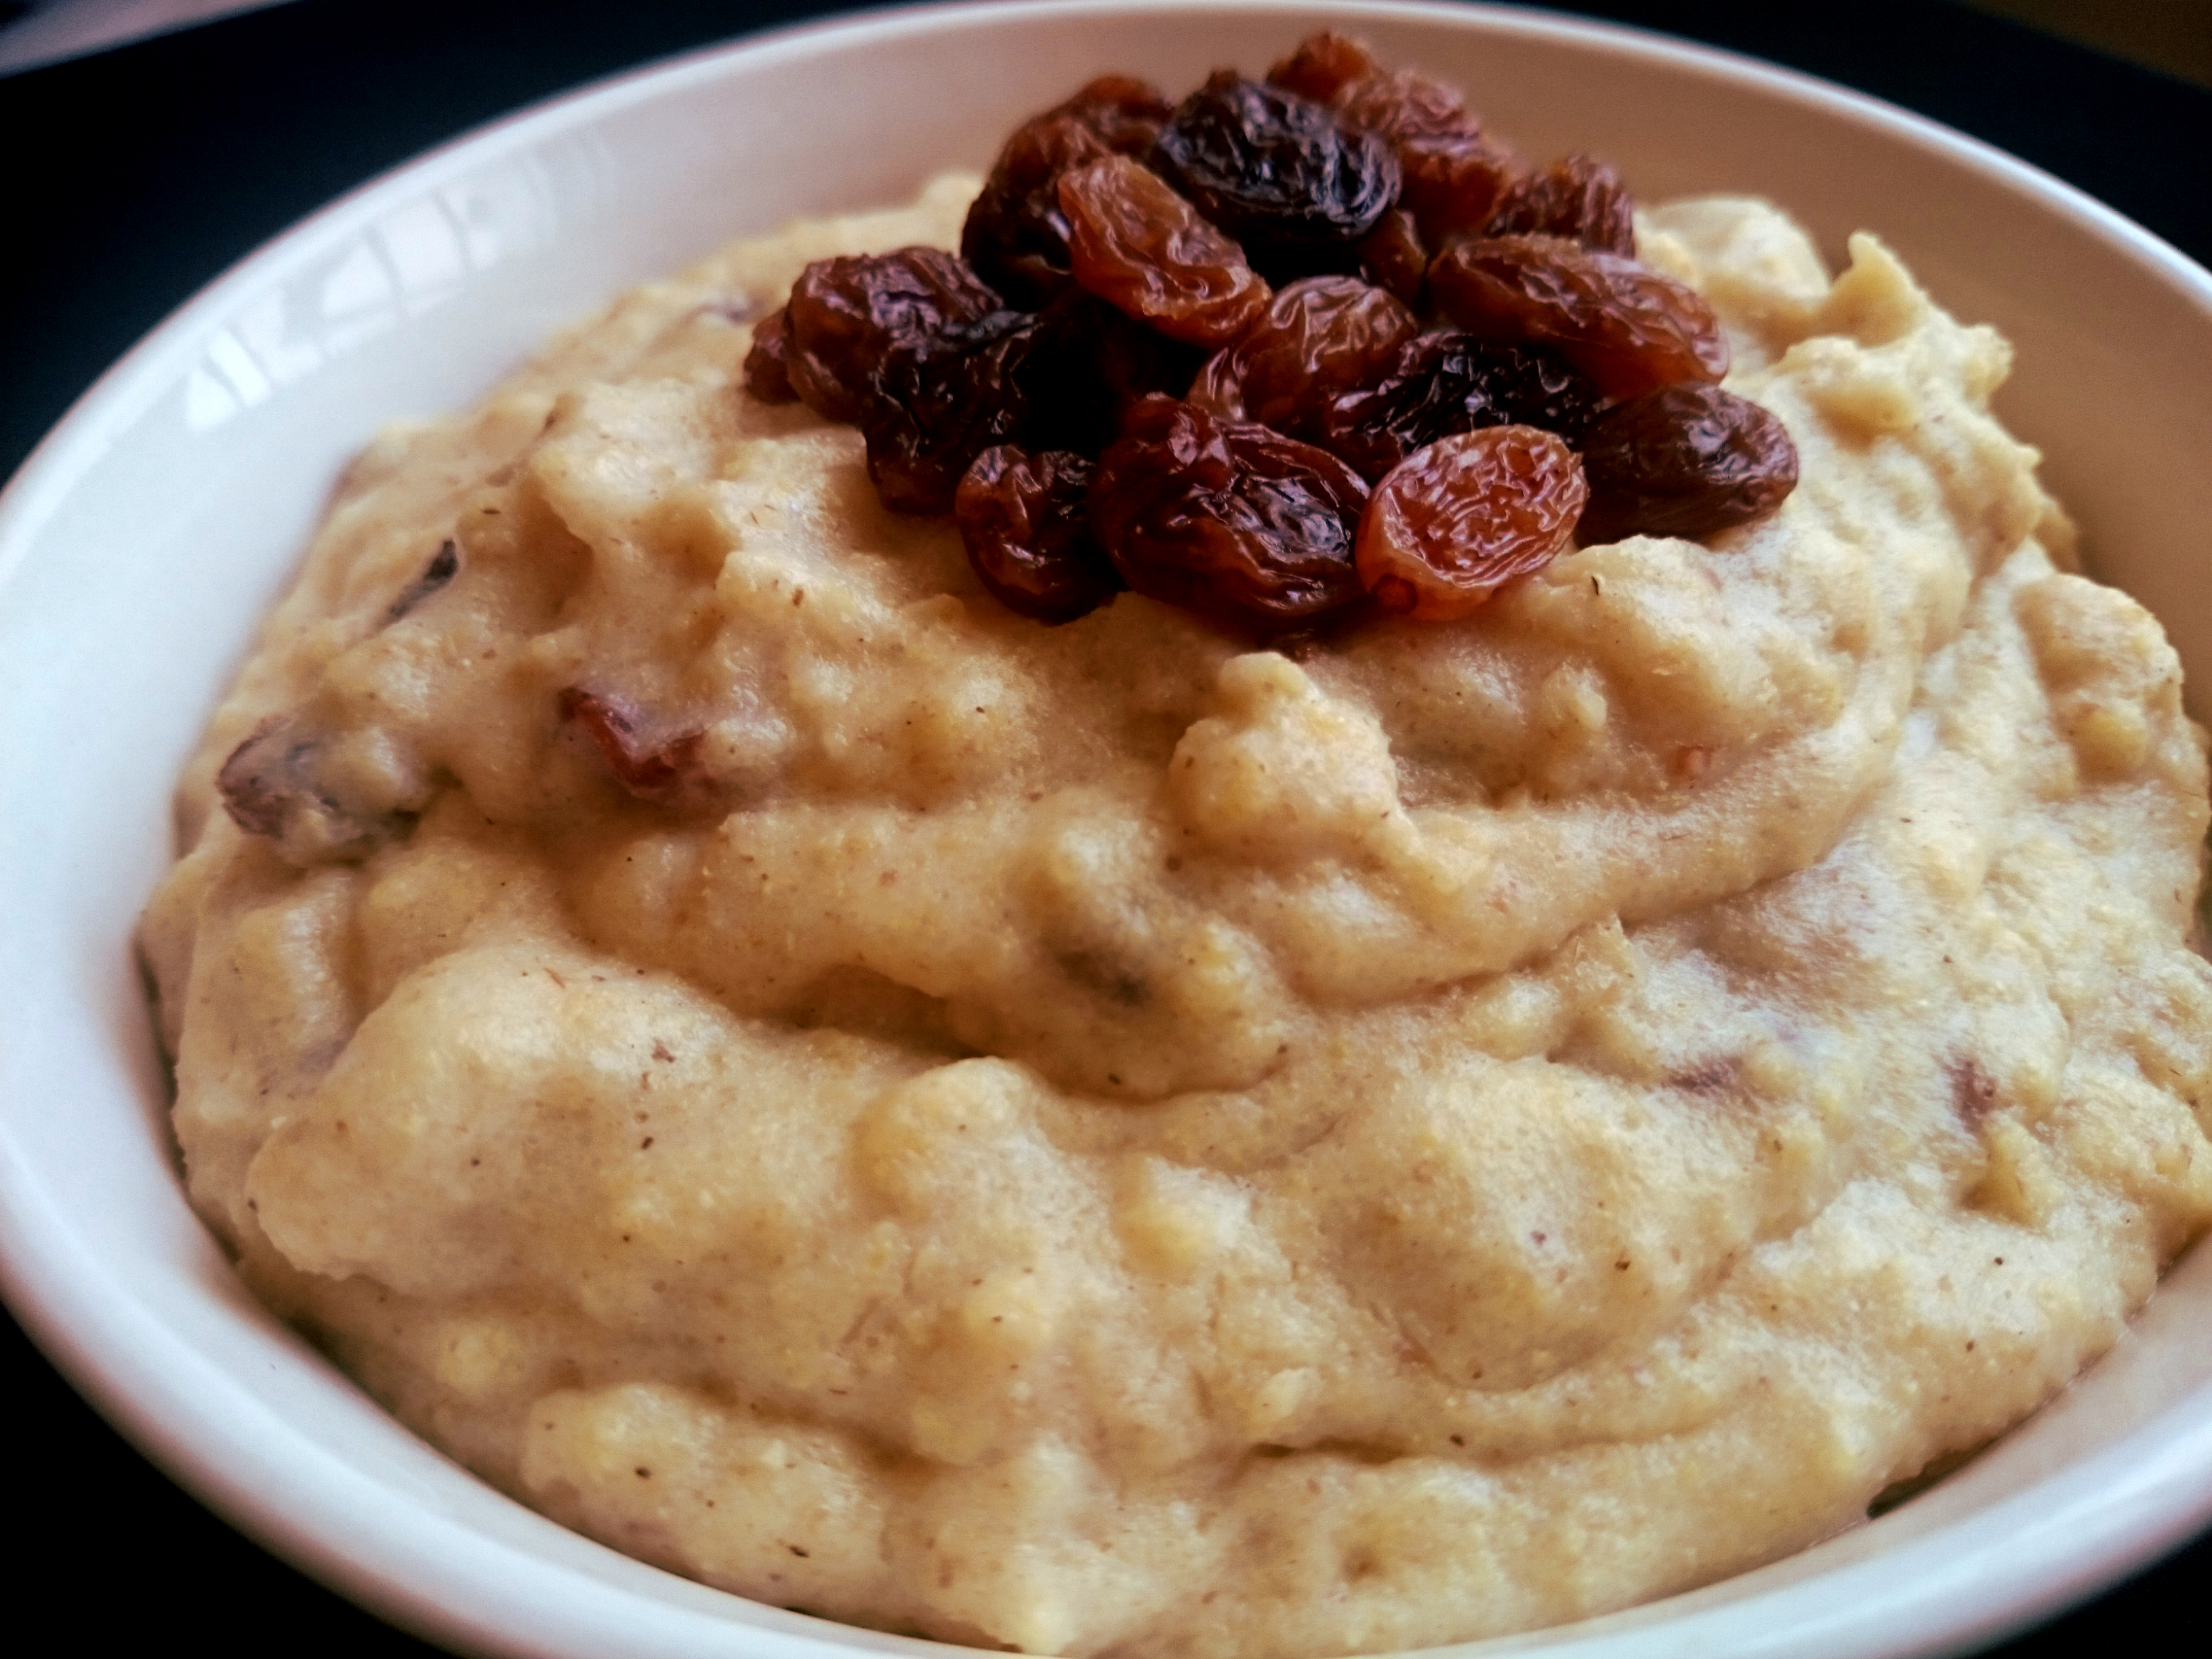 Grits for breakfast recipe vegirous september 2nd is americas national grits for breakfast day and in honor of this very special day i made grits and had it for breakfast grits is a native forumfinder